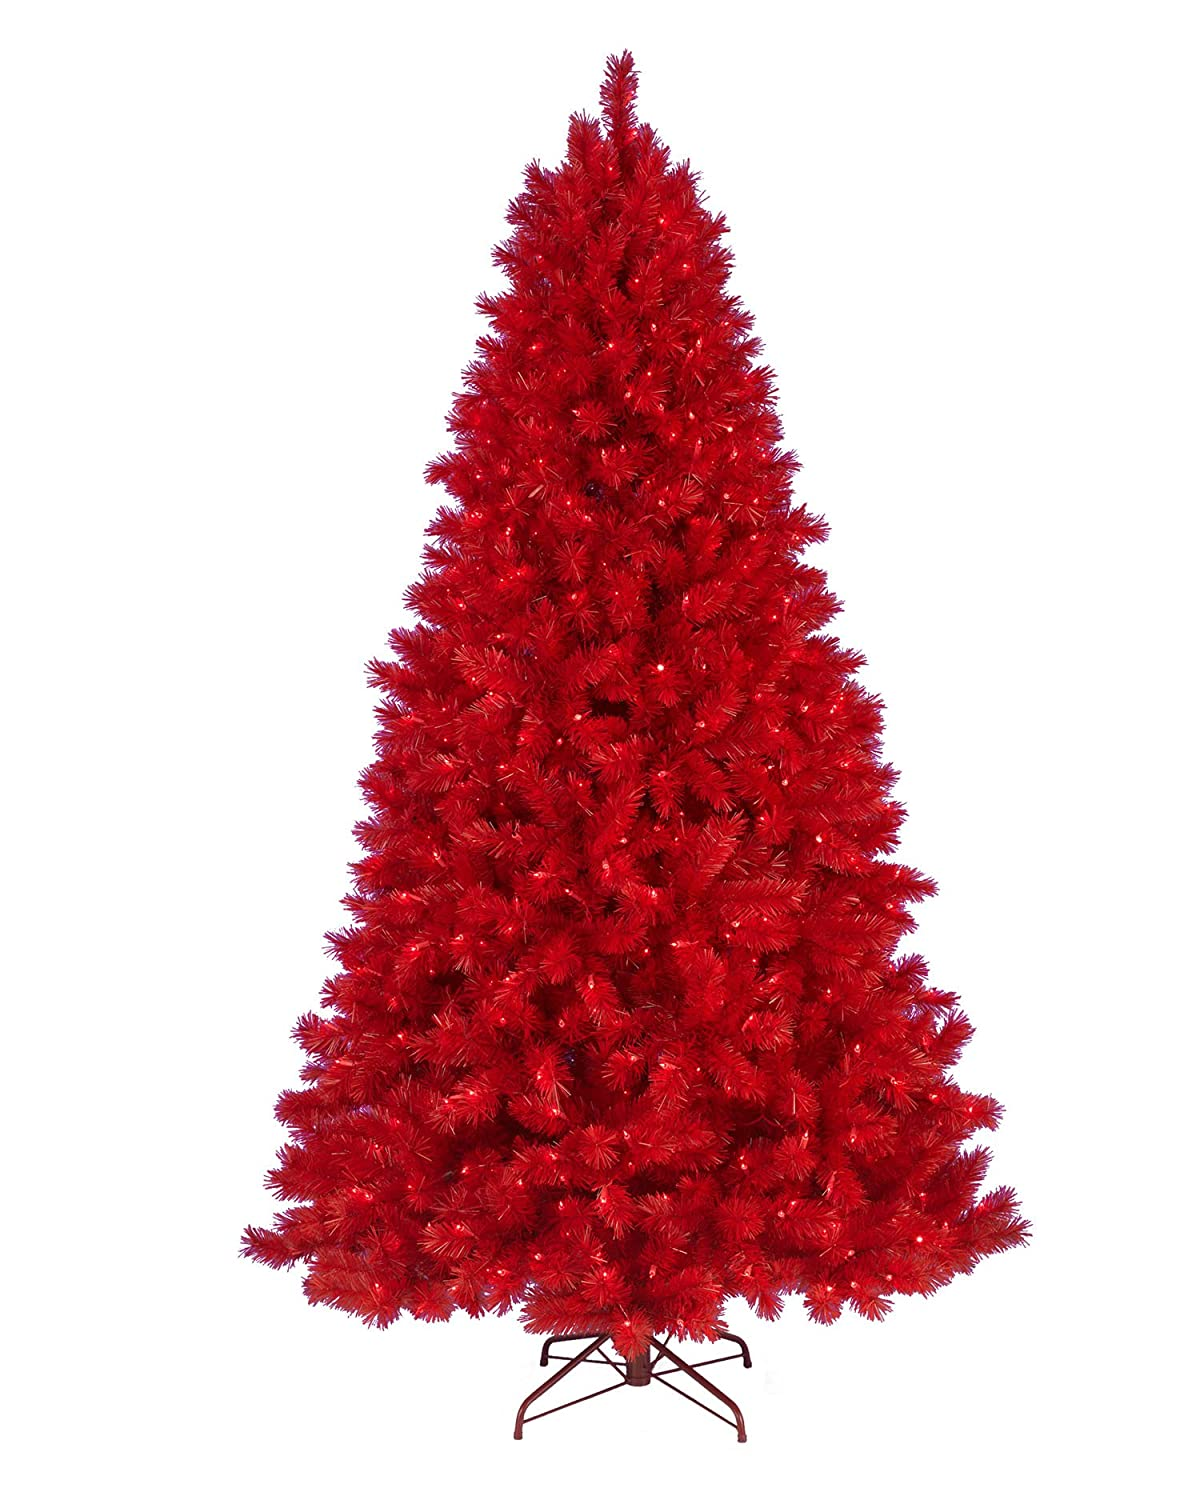 Red Christmas Tree.6 Ft Ashley Red Artificial Christmas Tree With Red Lights